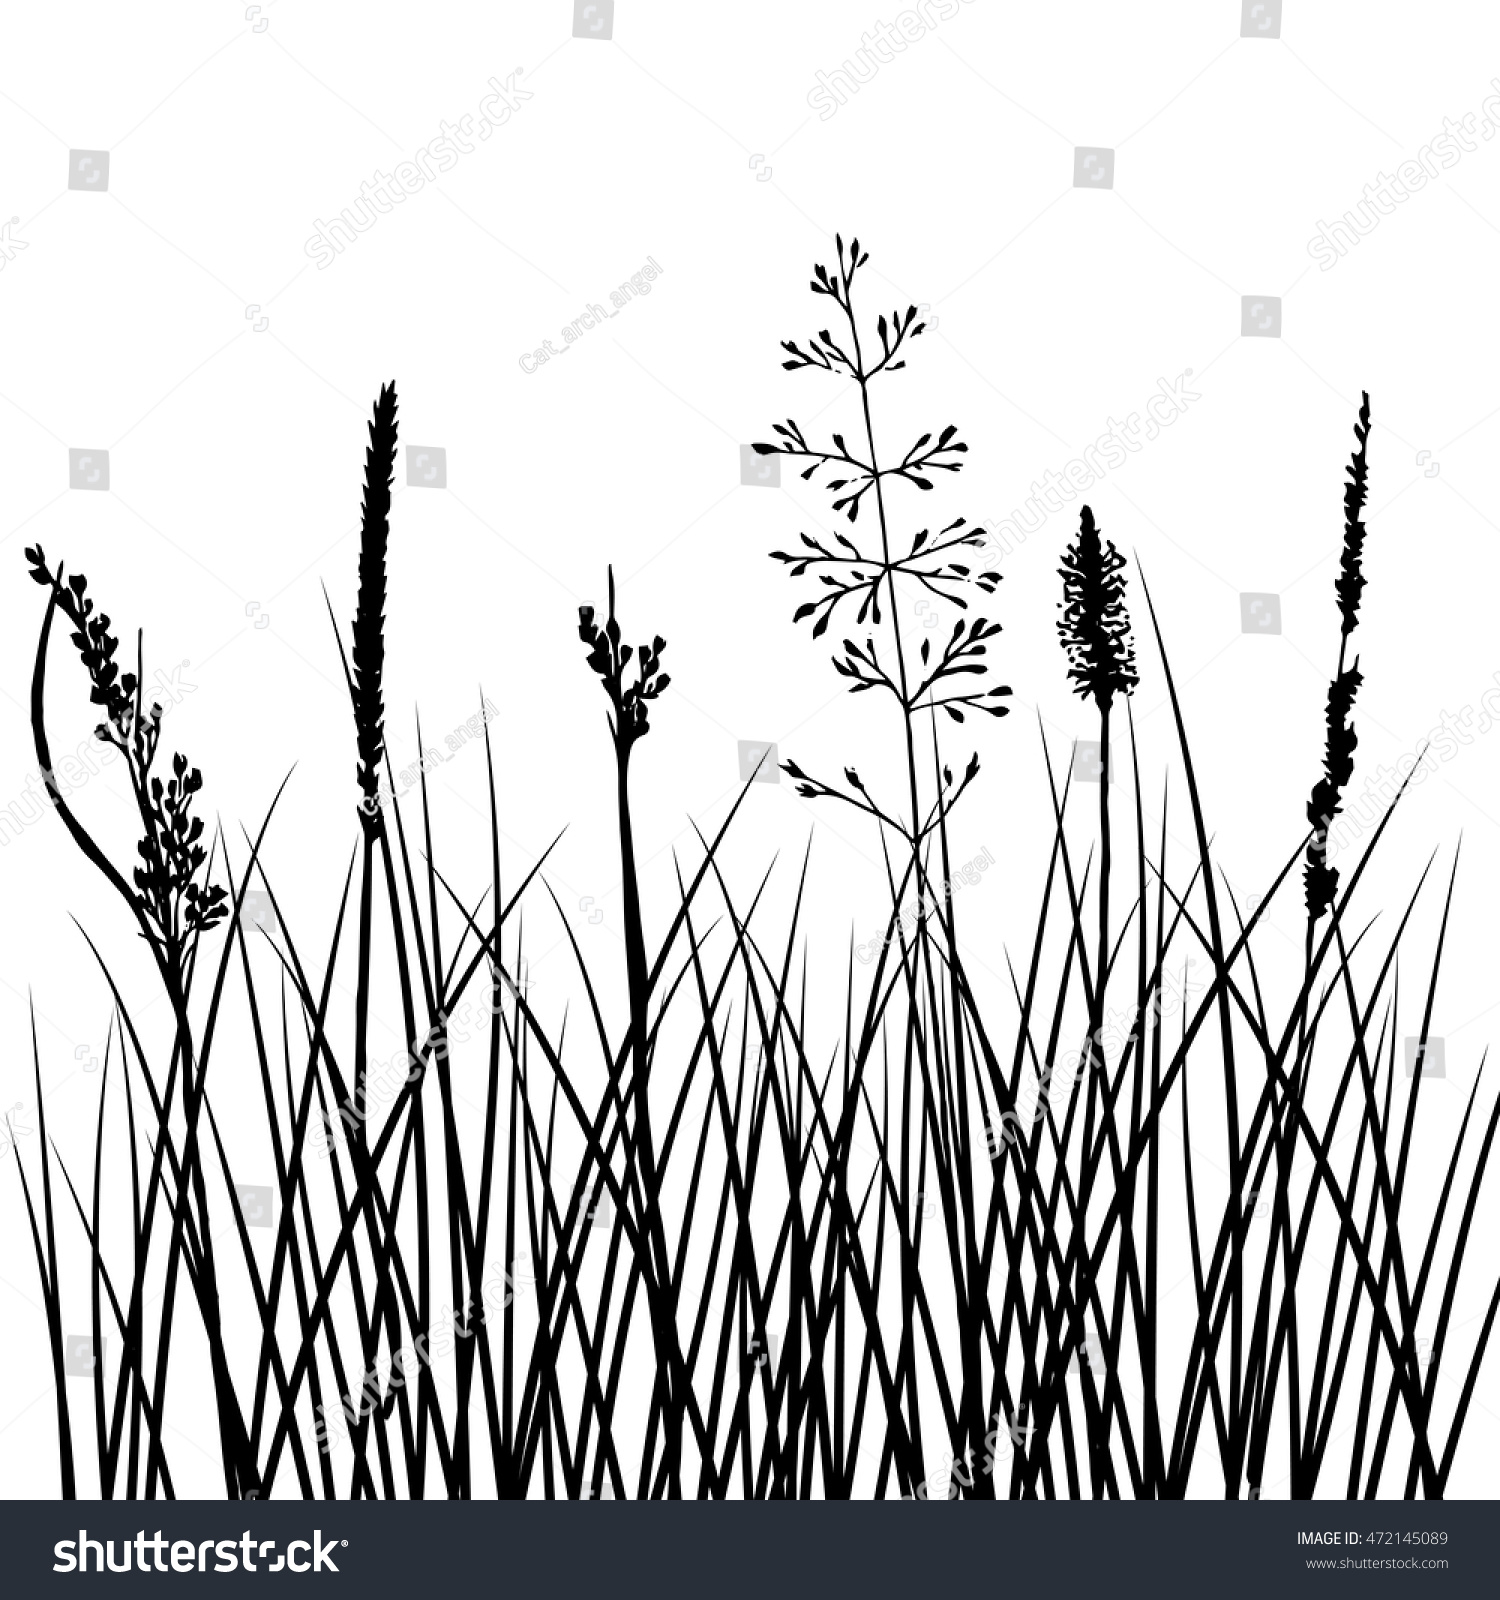 Vector Silhouettes Flowers Grass Background Wild Stock Vector (2018 ...